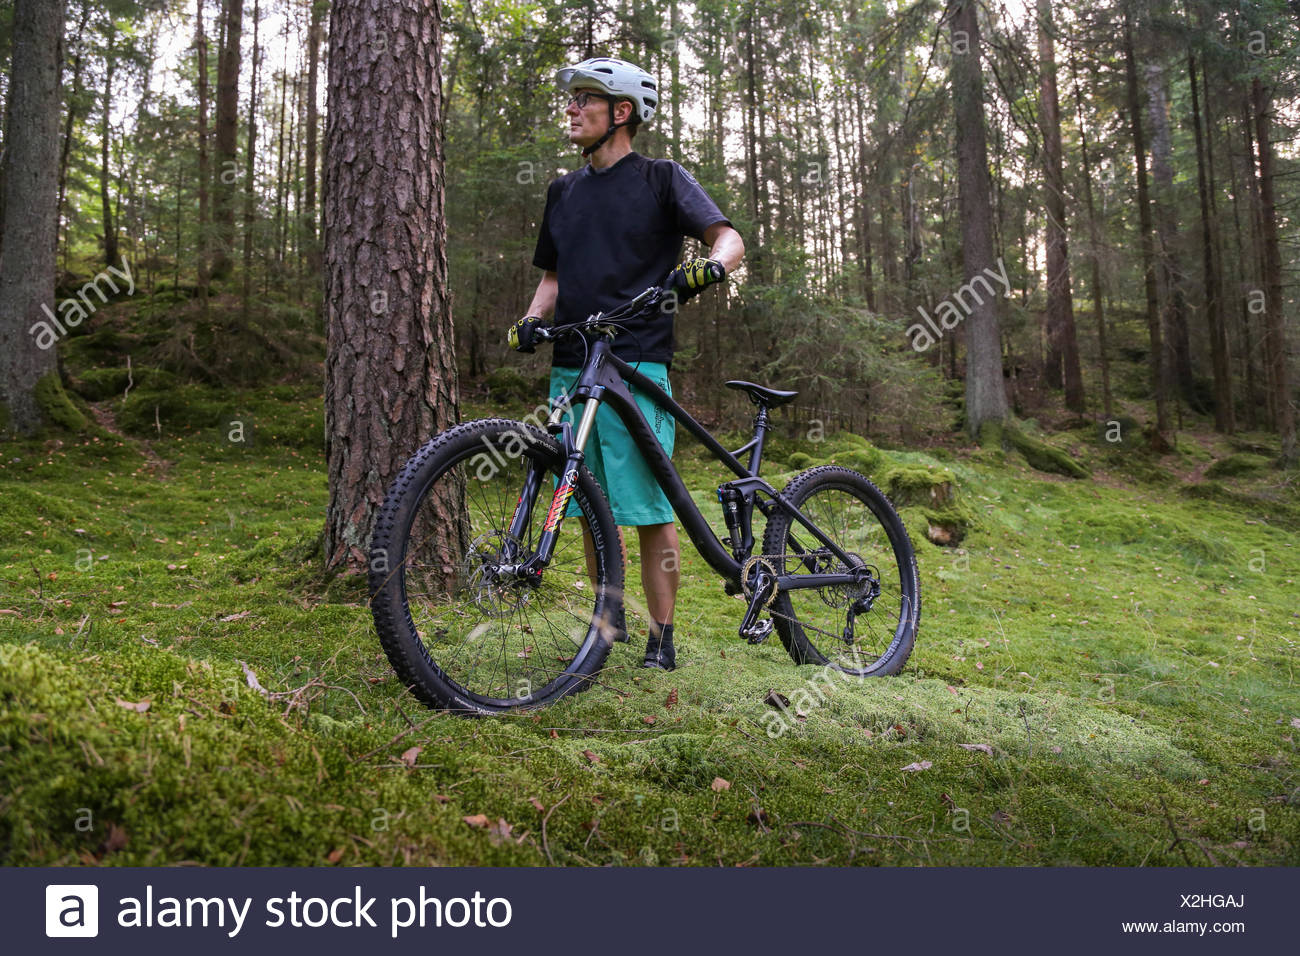 Sweden, Vastergotland, Lerum, Mature man with bicycle in forest - Stock Image